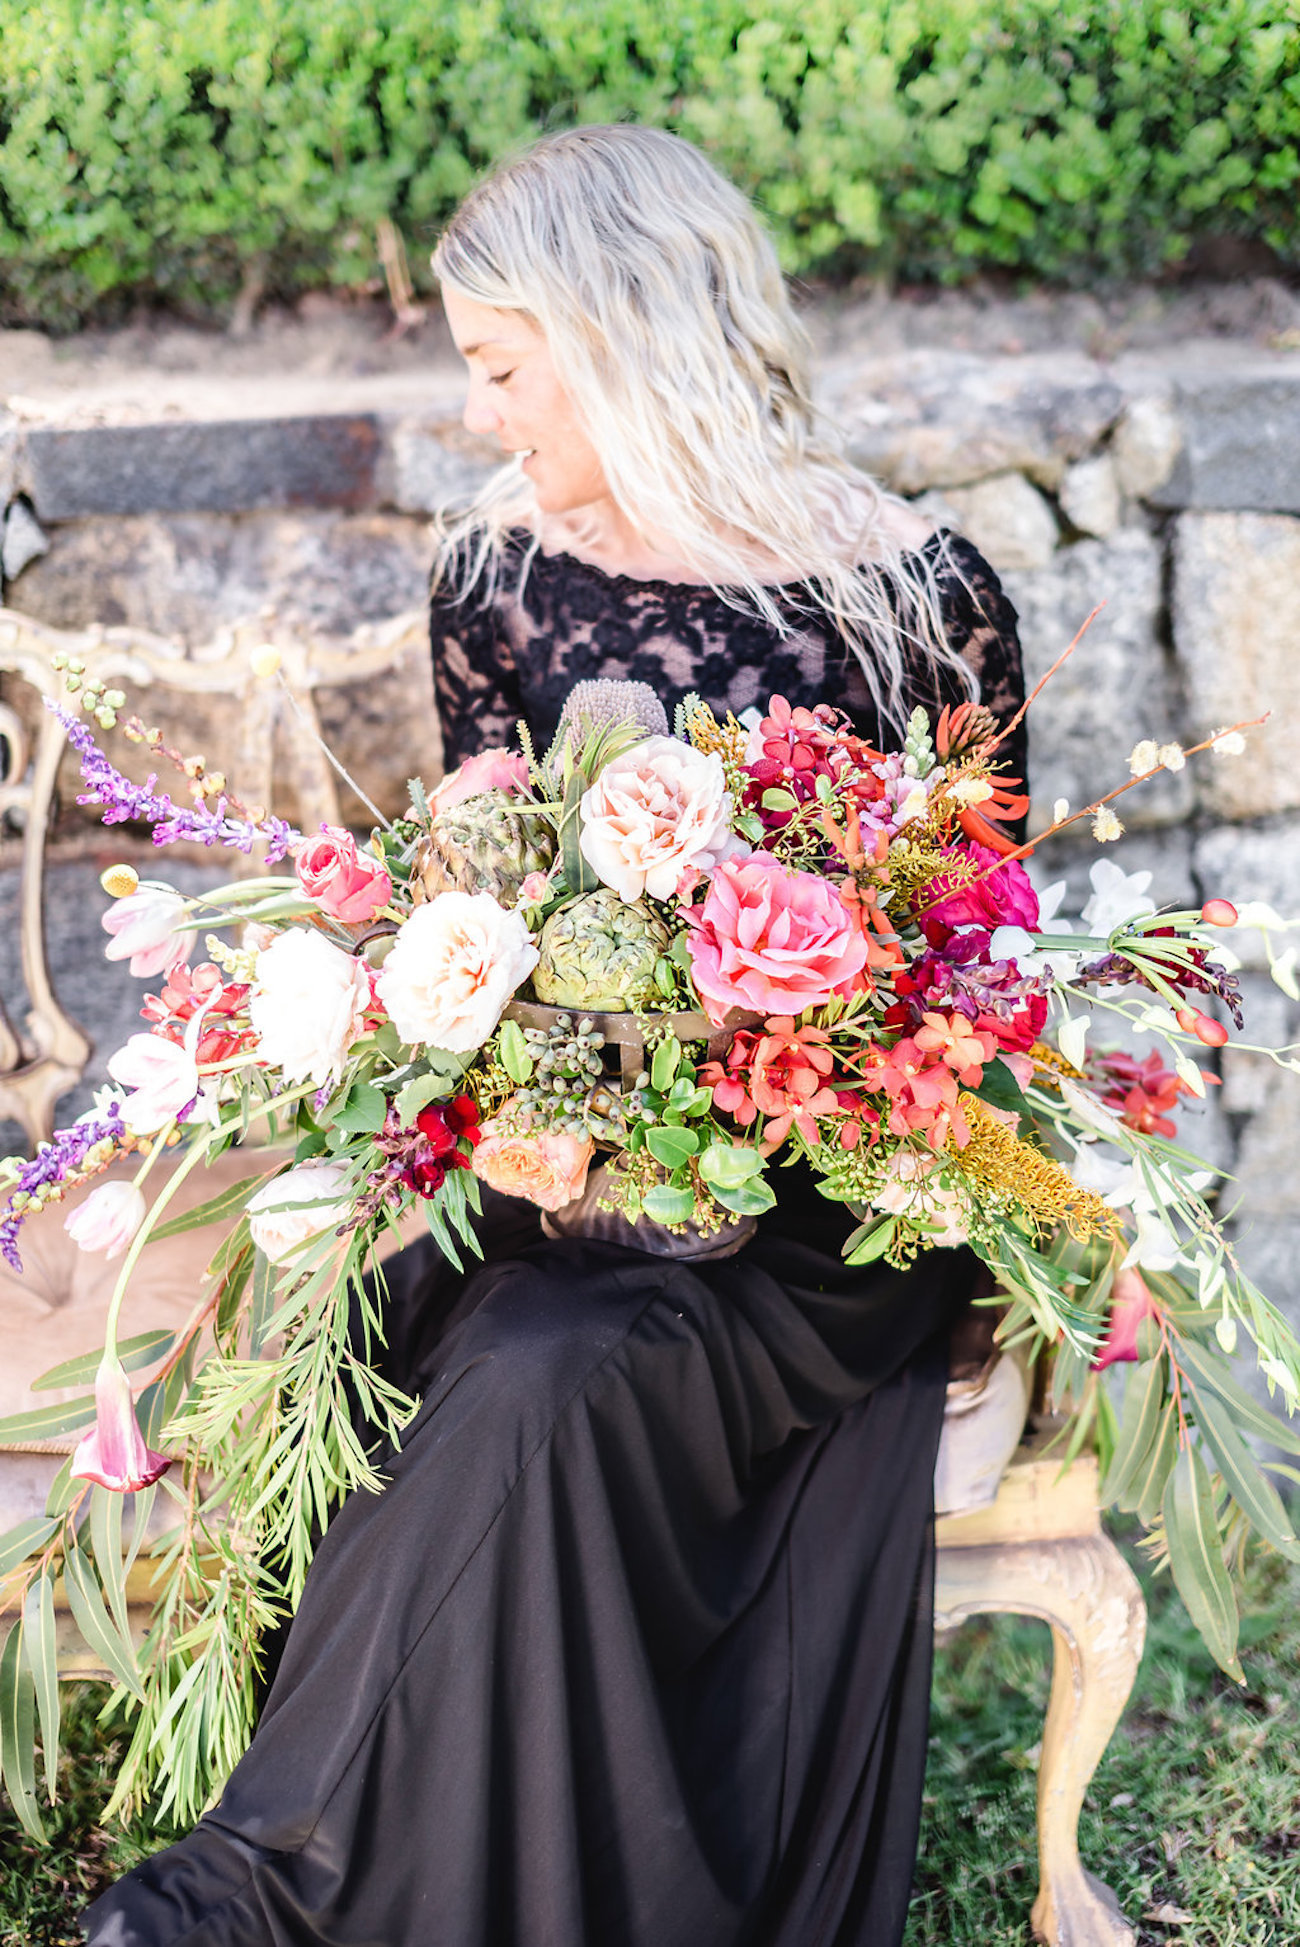 Lush Colorful Bouquet | Credit: Jacoba Clothing/PhotoKru